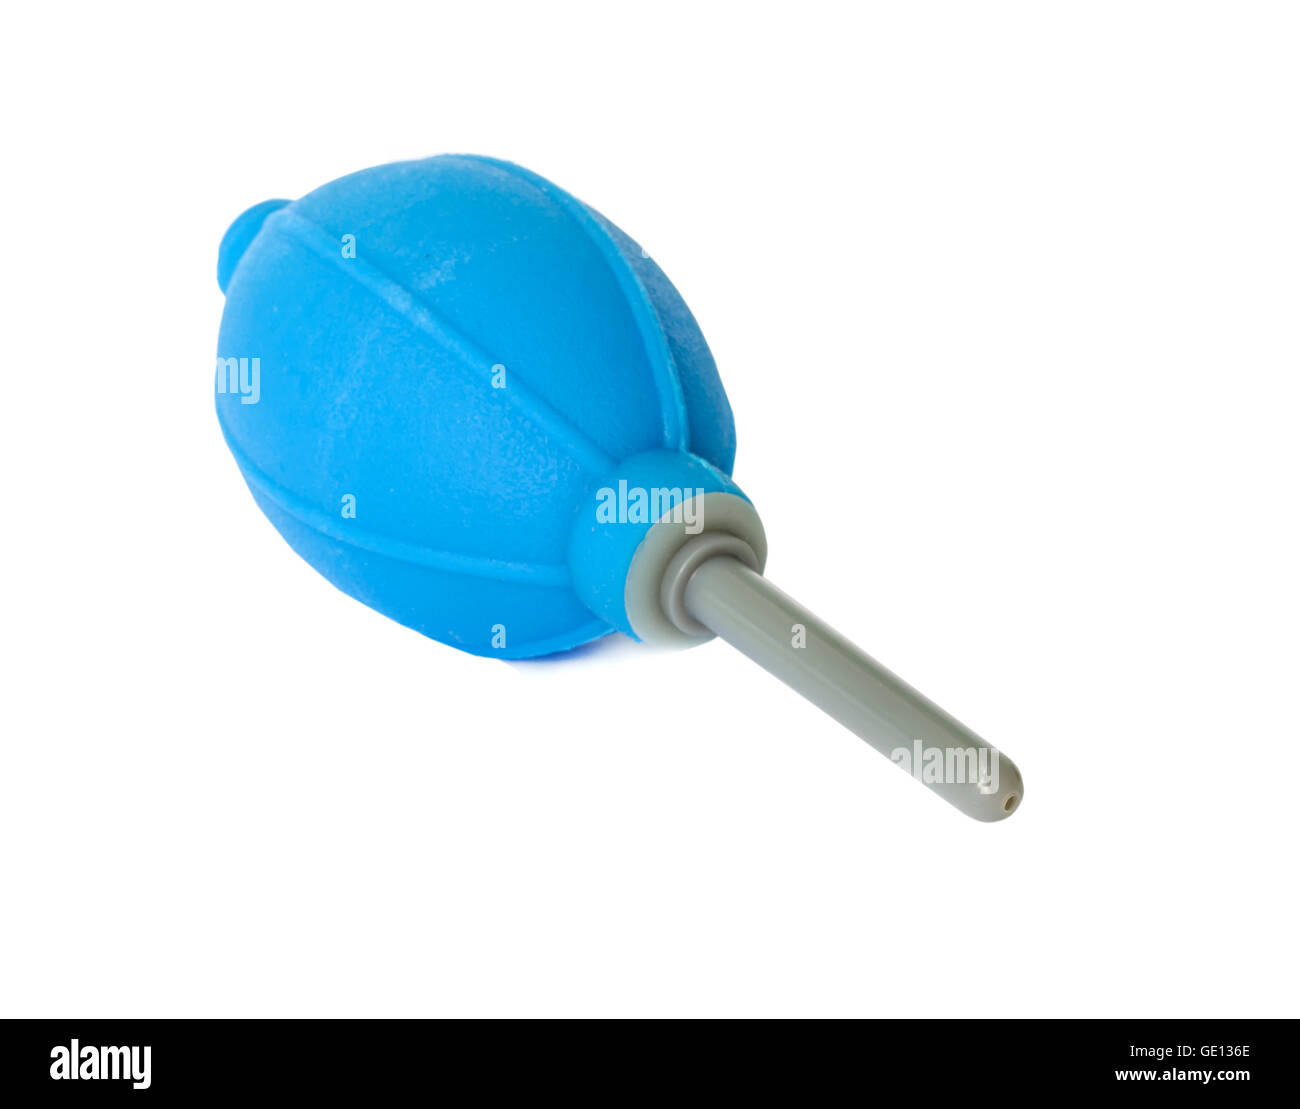 Rubber Air Blower Pump For Dust Cleaner in Camera and len. - Stock Image